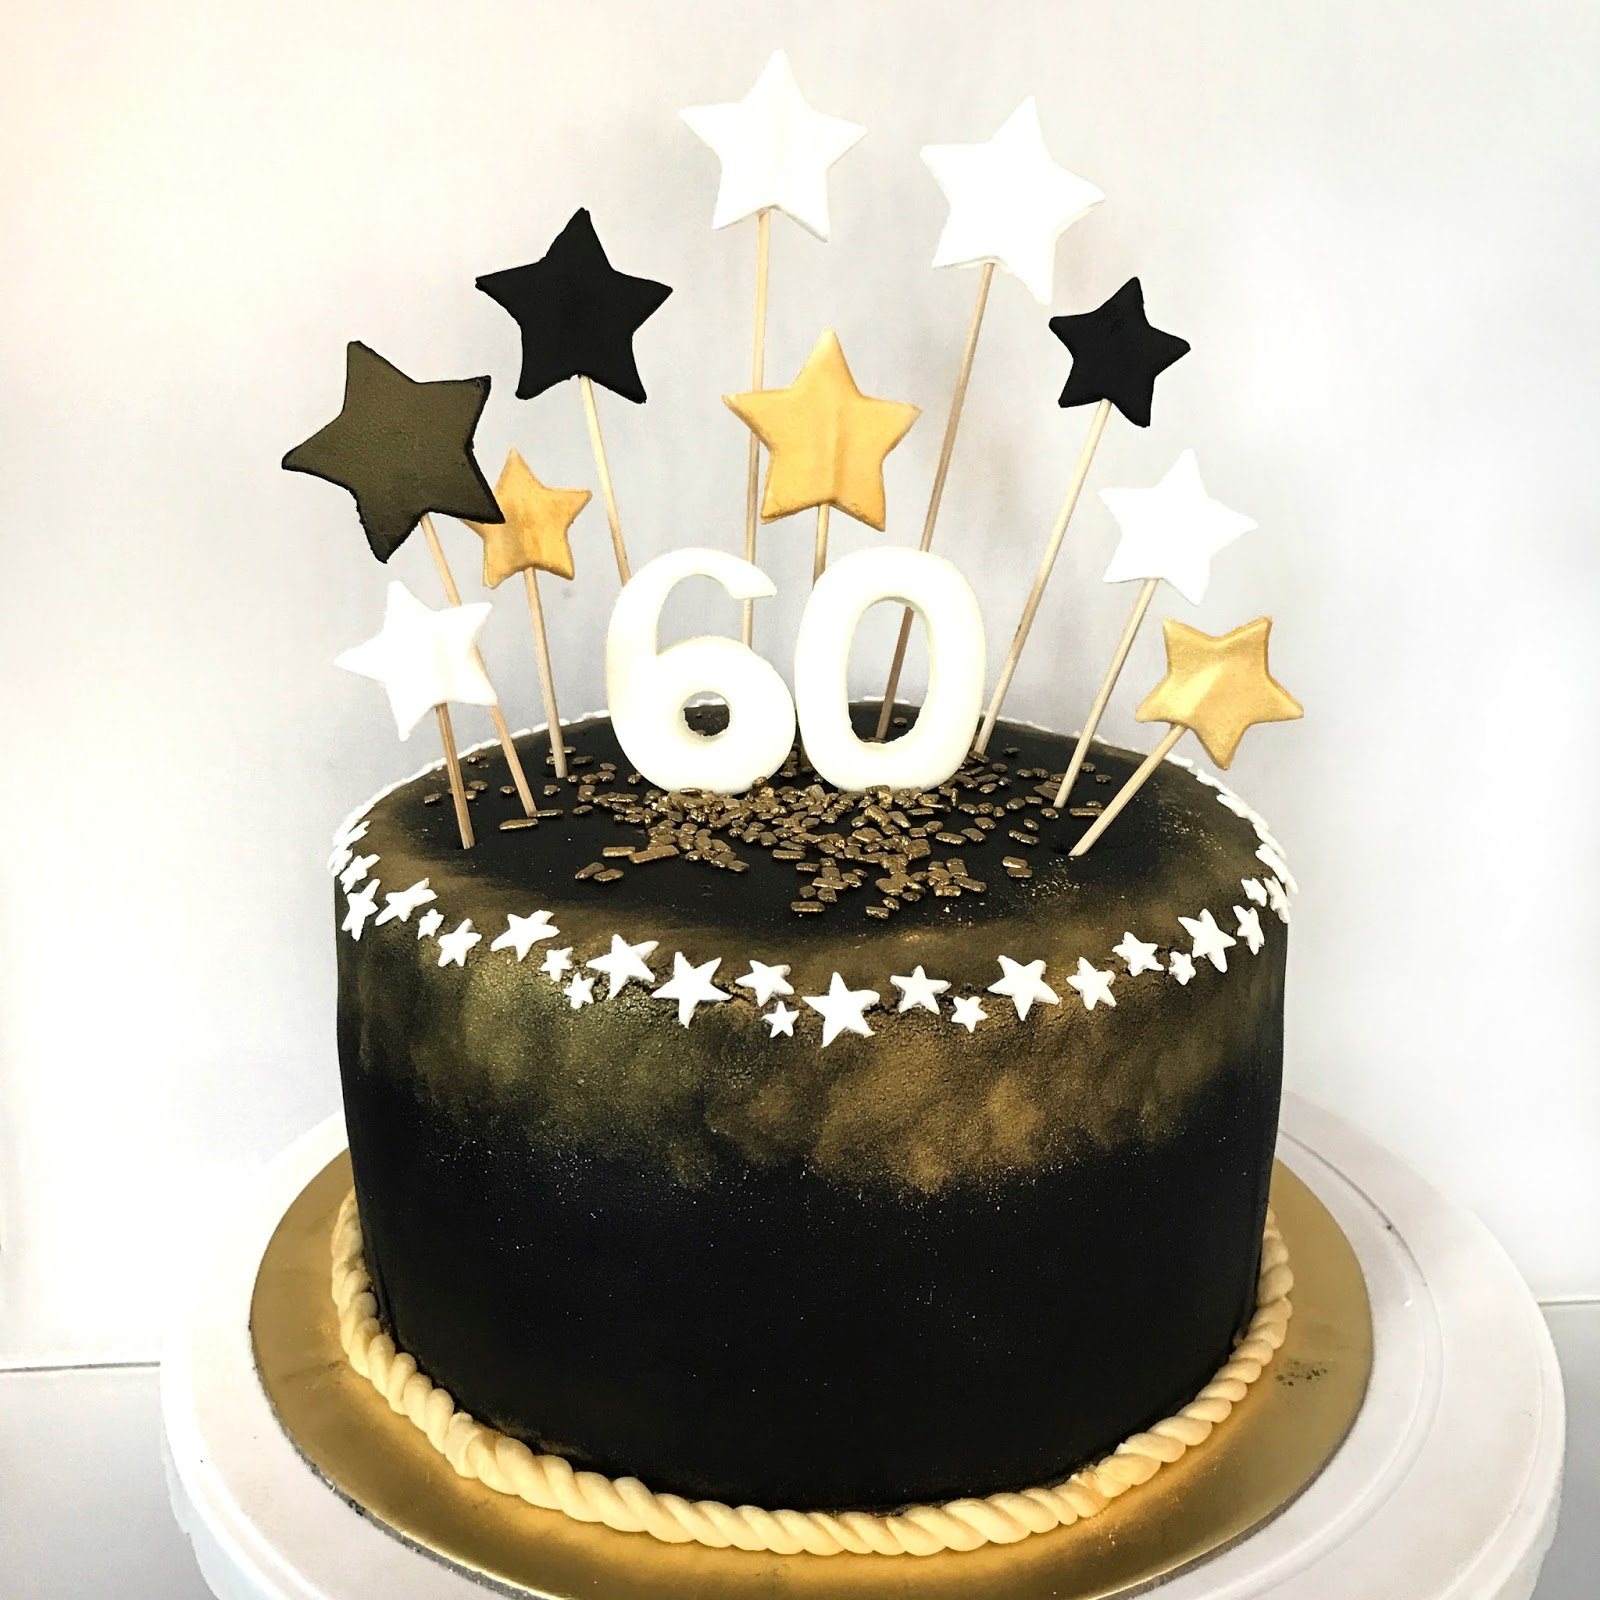 Brilliant Black And Gold 60Th Birthday Cake Sherbakes Personalised Birthday Cards Paralily Jamesorg